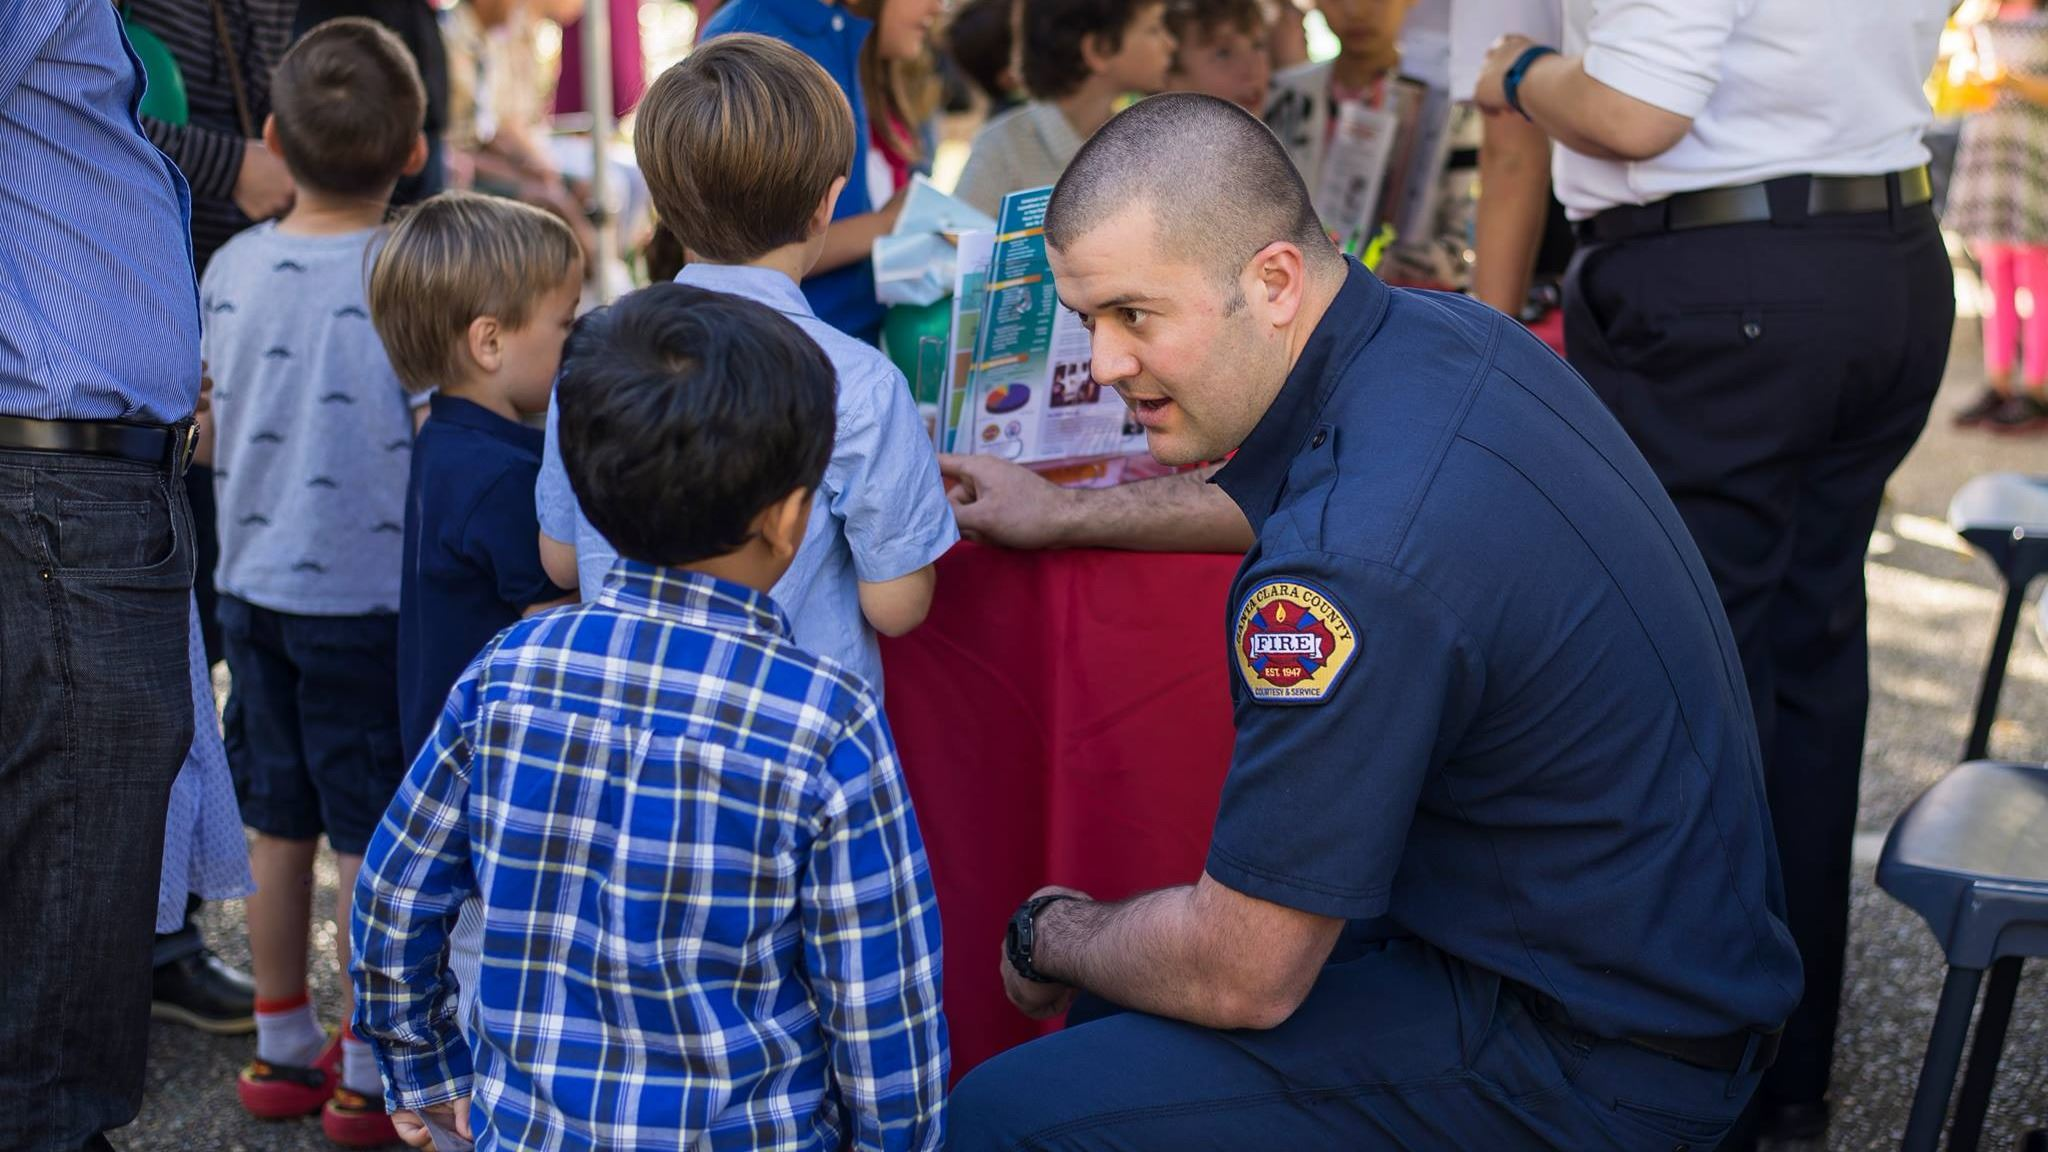 Santa Clara County Firefighter and Children